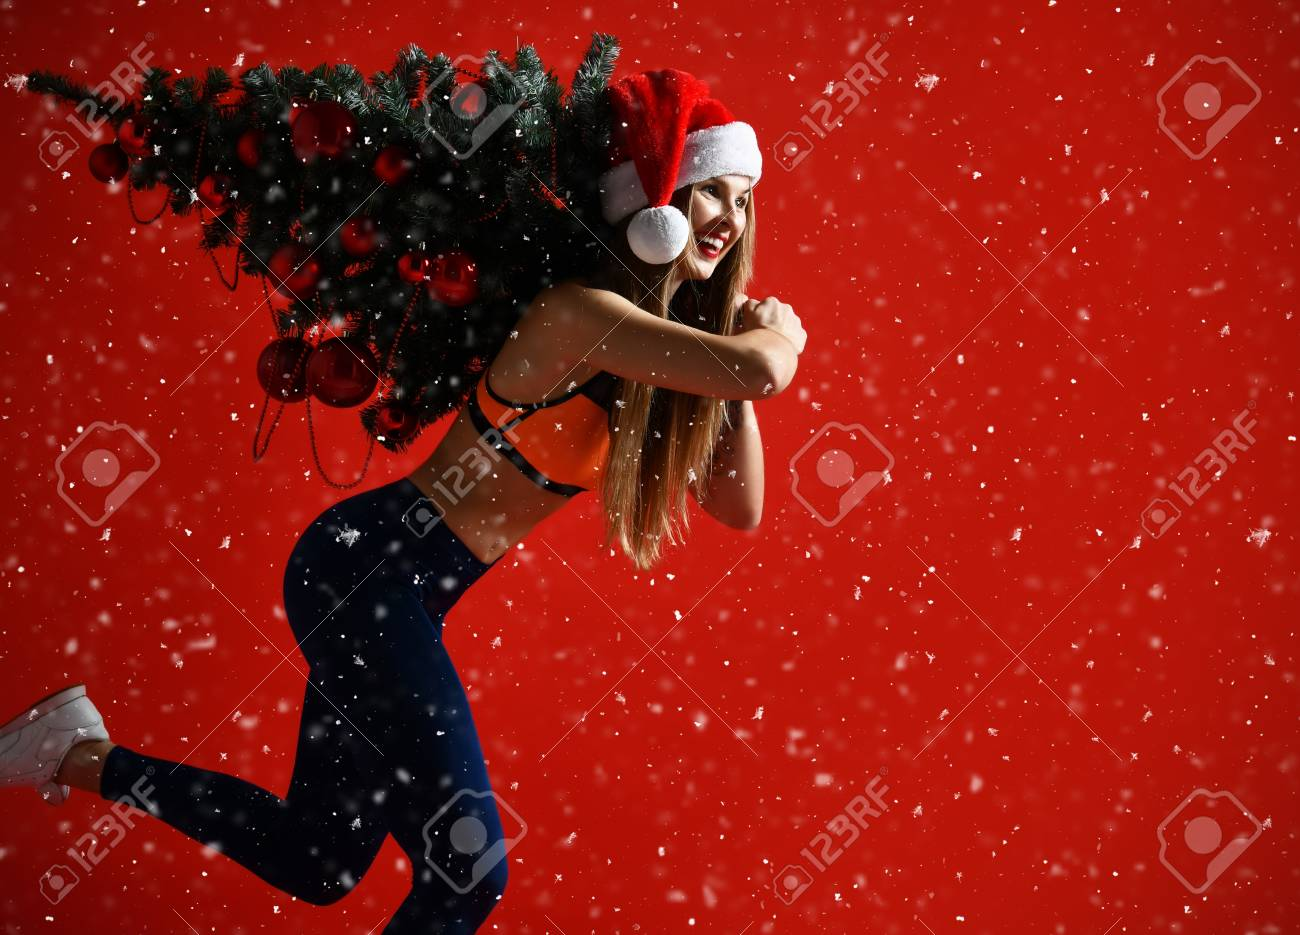 Christmas fitness sport woman wearing santa hat holding xmas tree on her shoulders. running forward on a snowing red background - 110768031